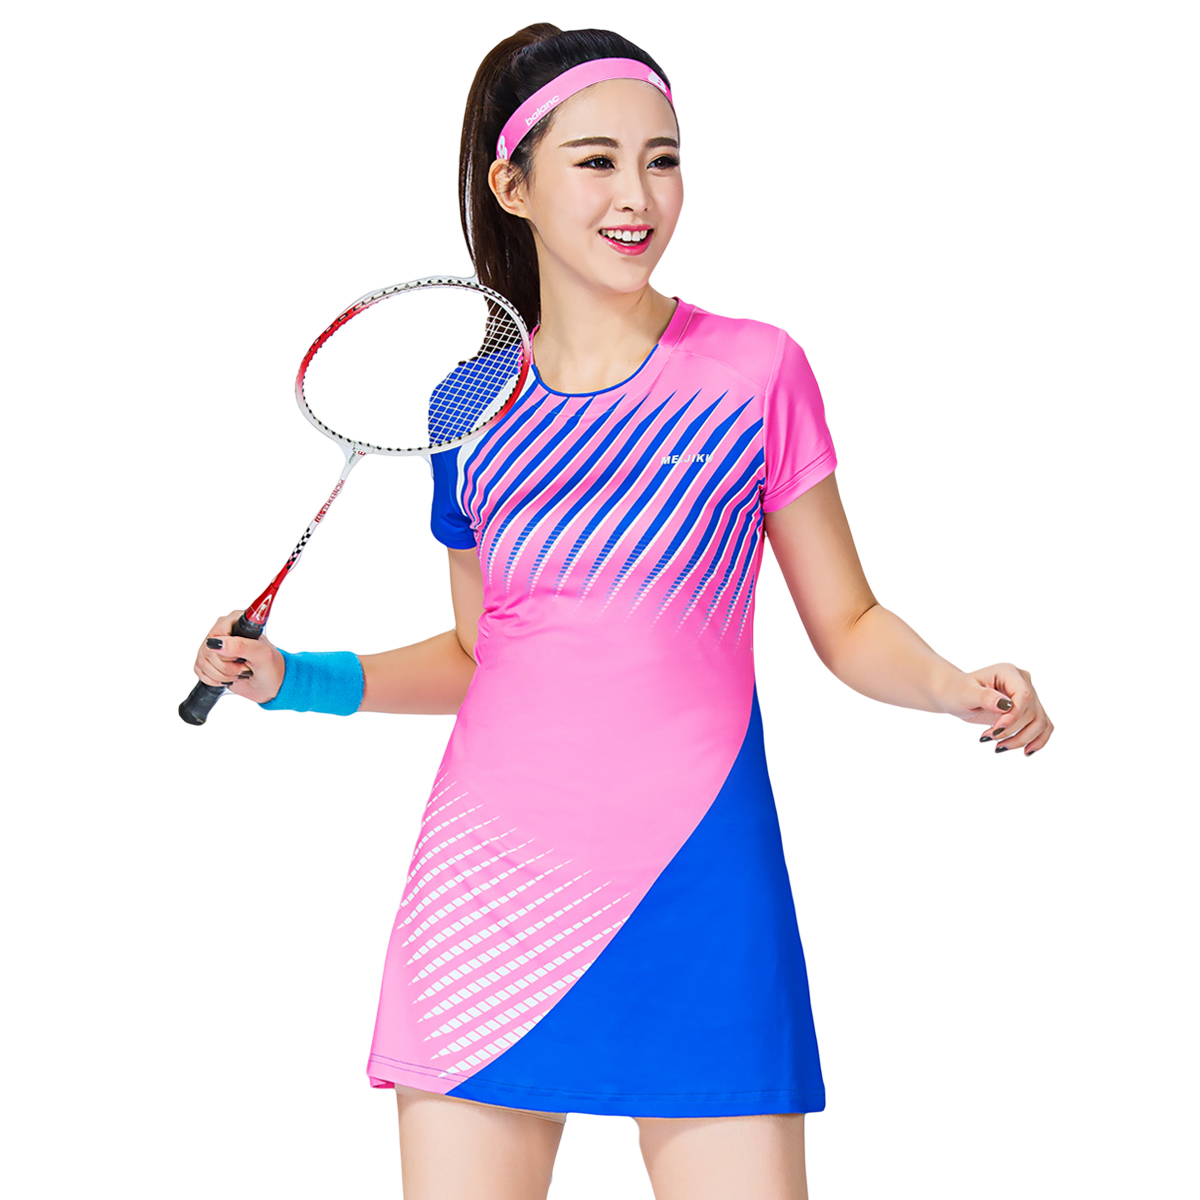 Badminton Clothes Dresses Quick Dry Big Wardrobe Malfunction Cultivate Morality Tennis Dress With Safety Short